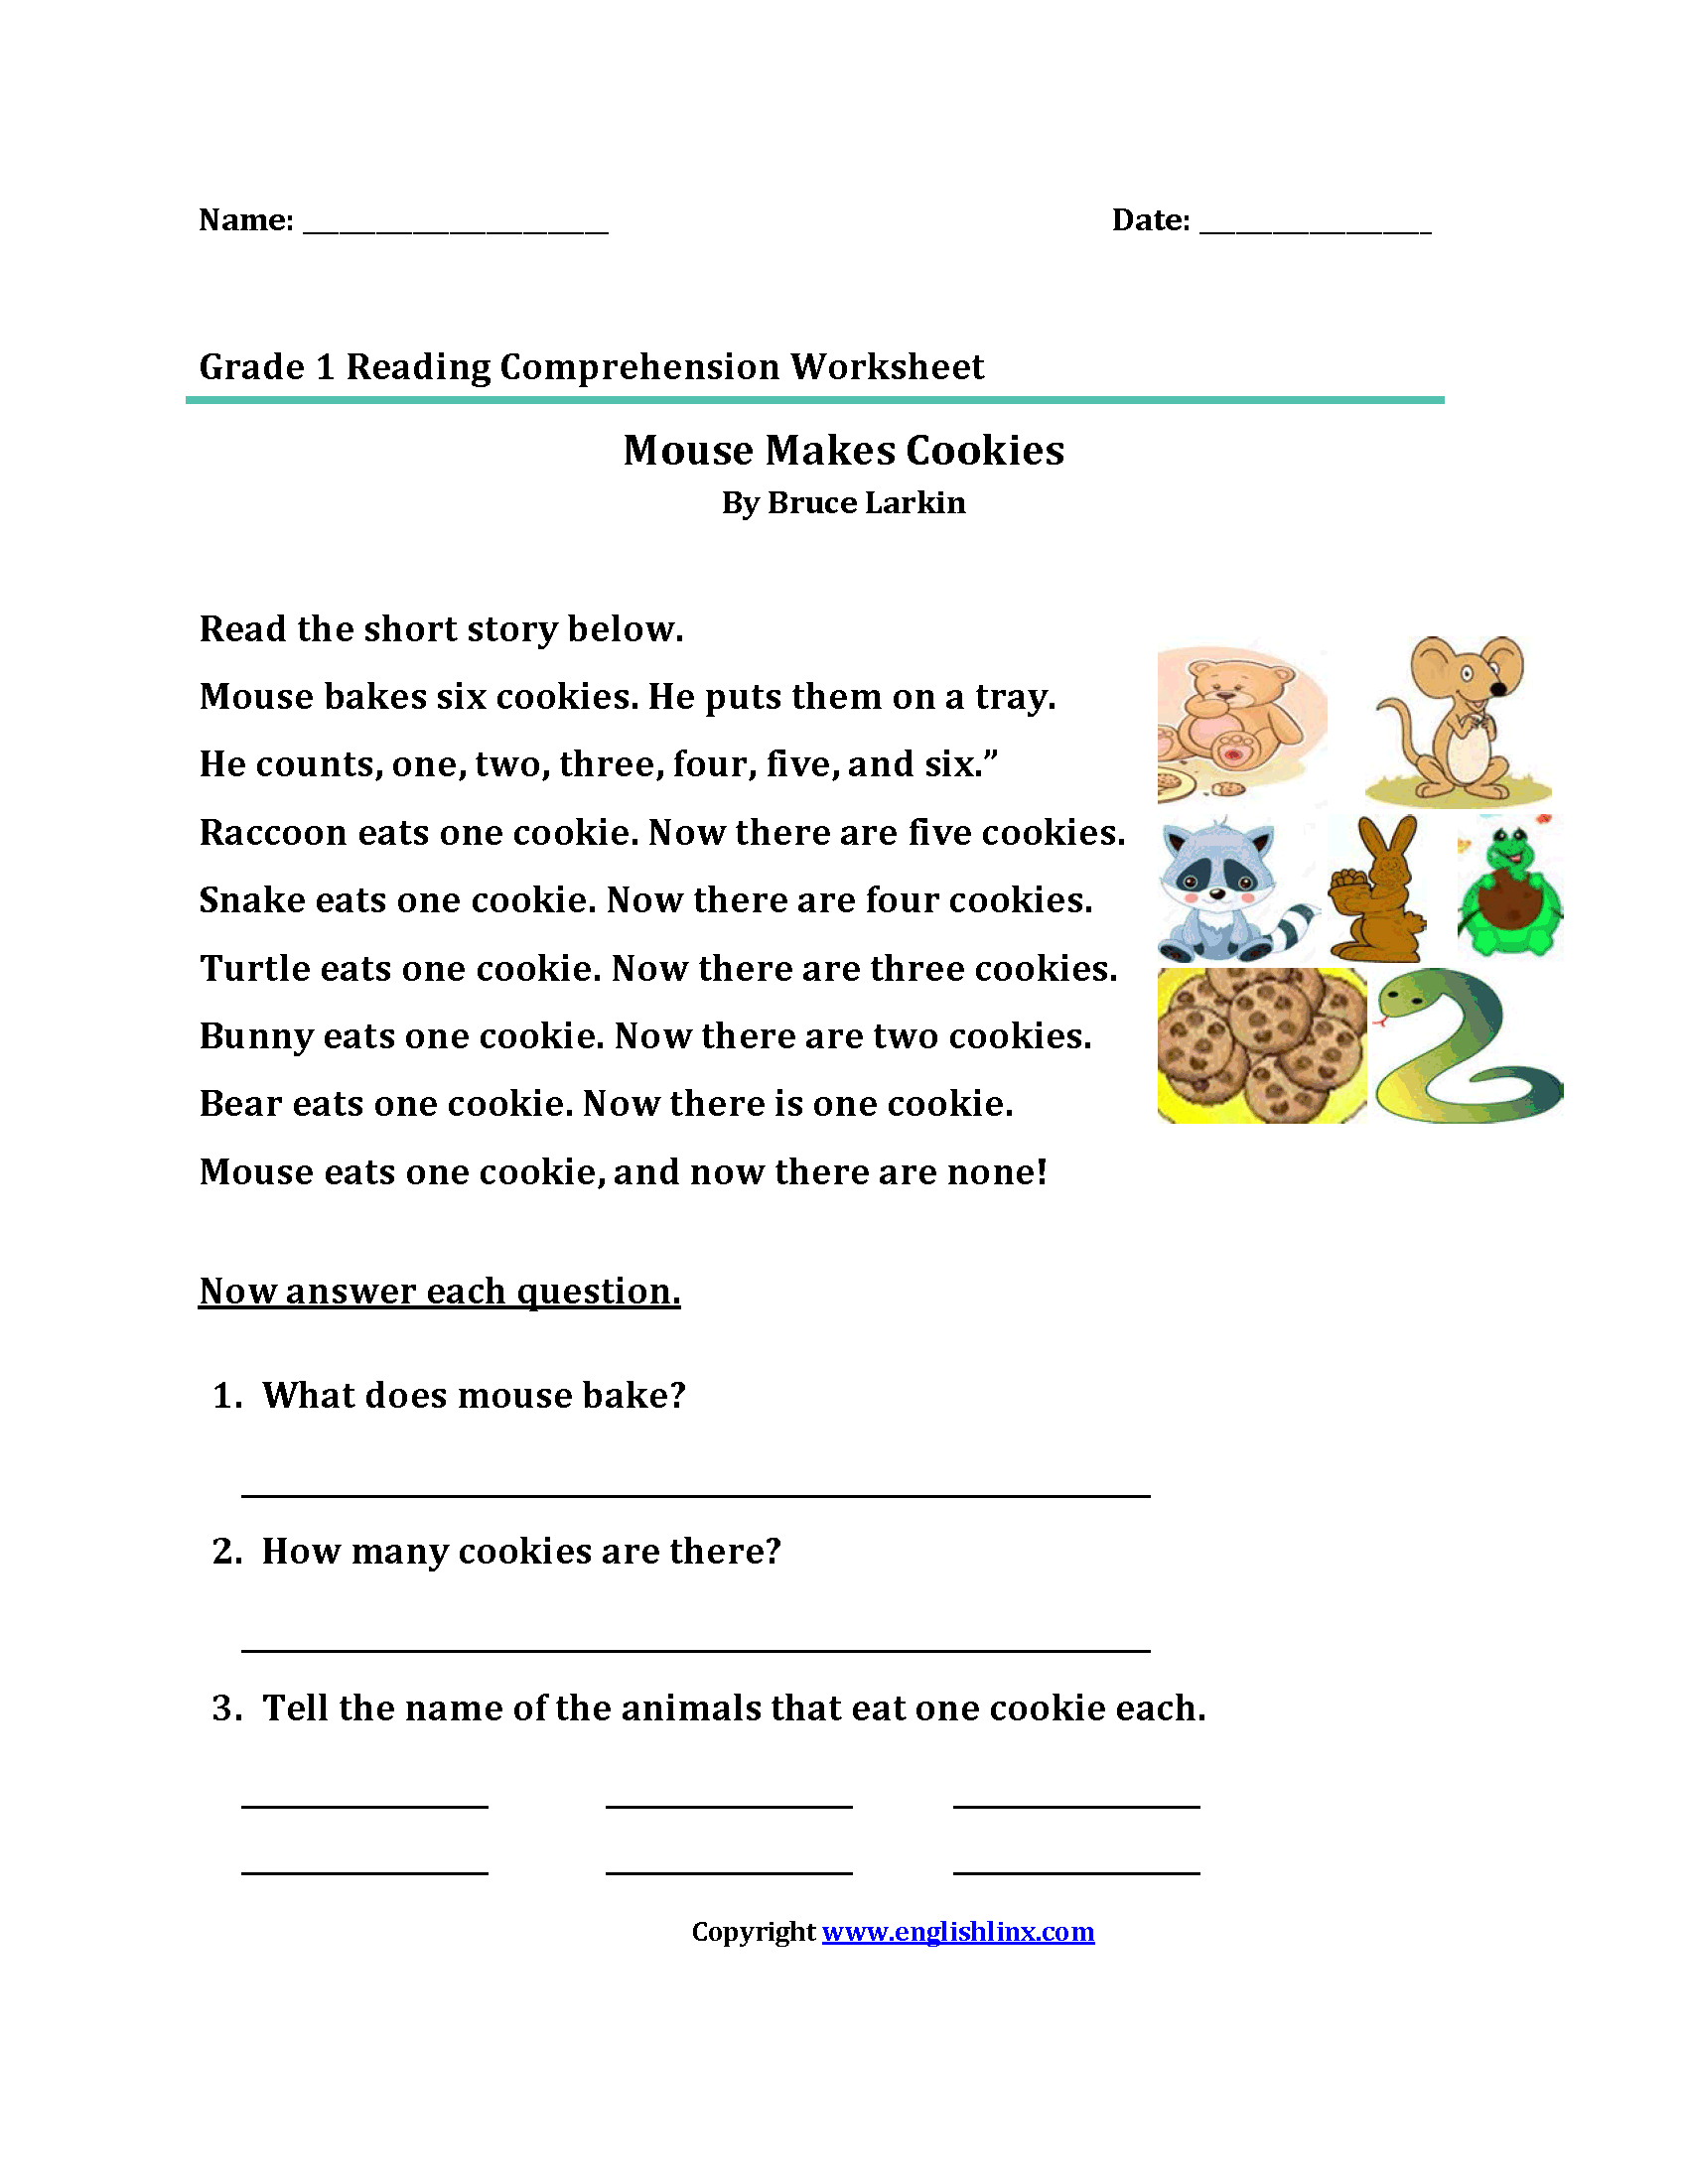 Free Printable Reading Comprehension Worksheets For 1st